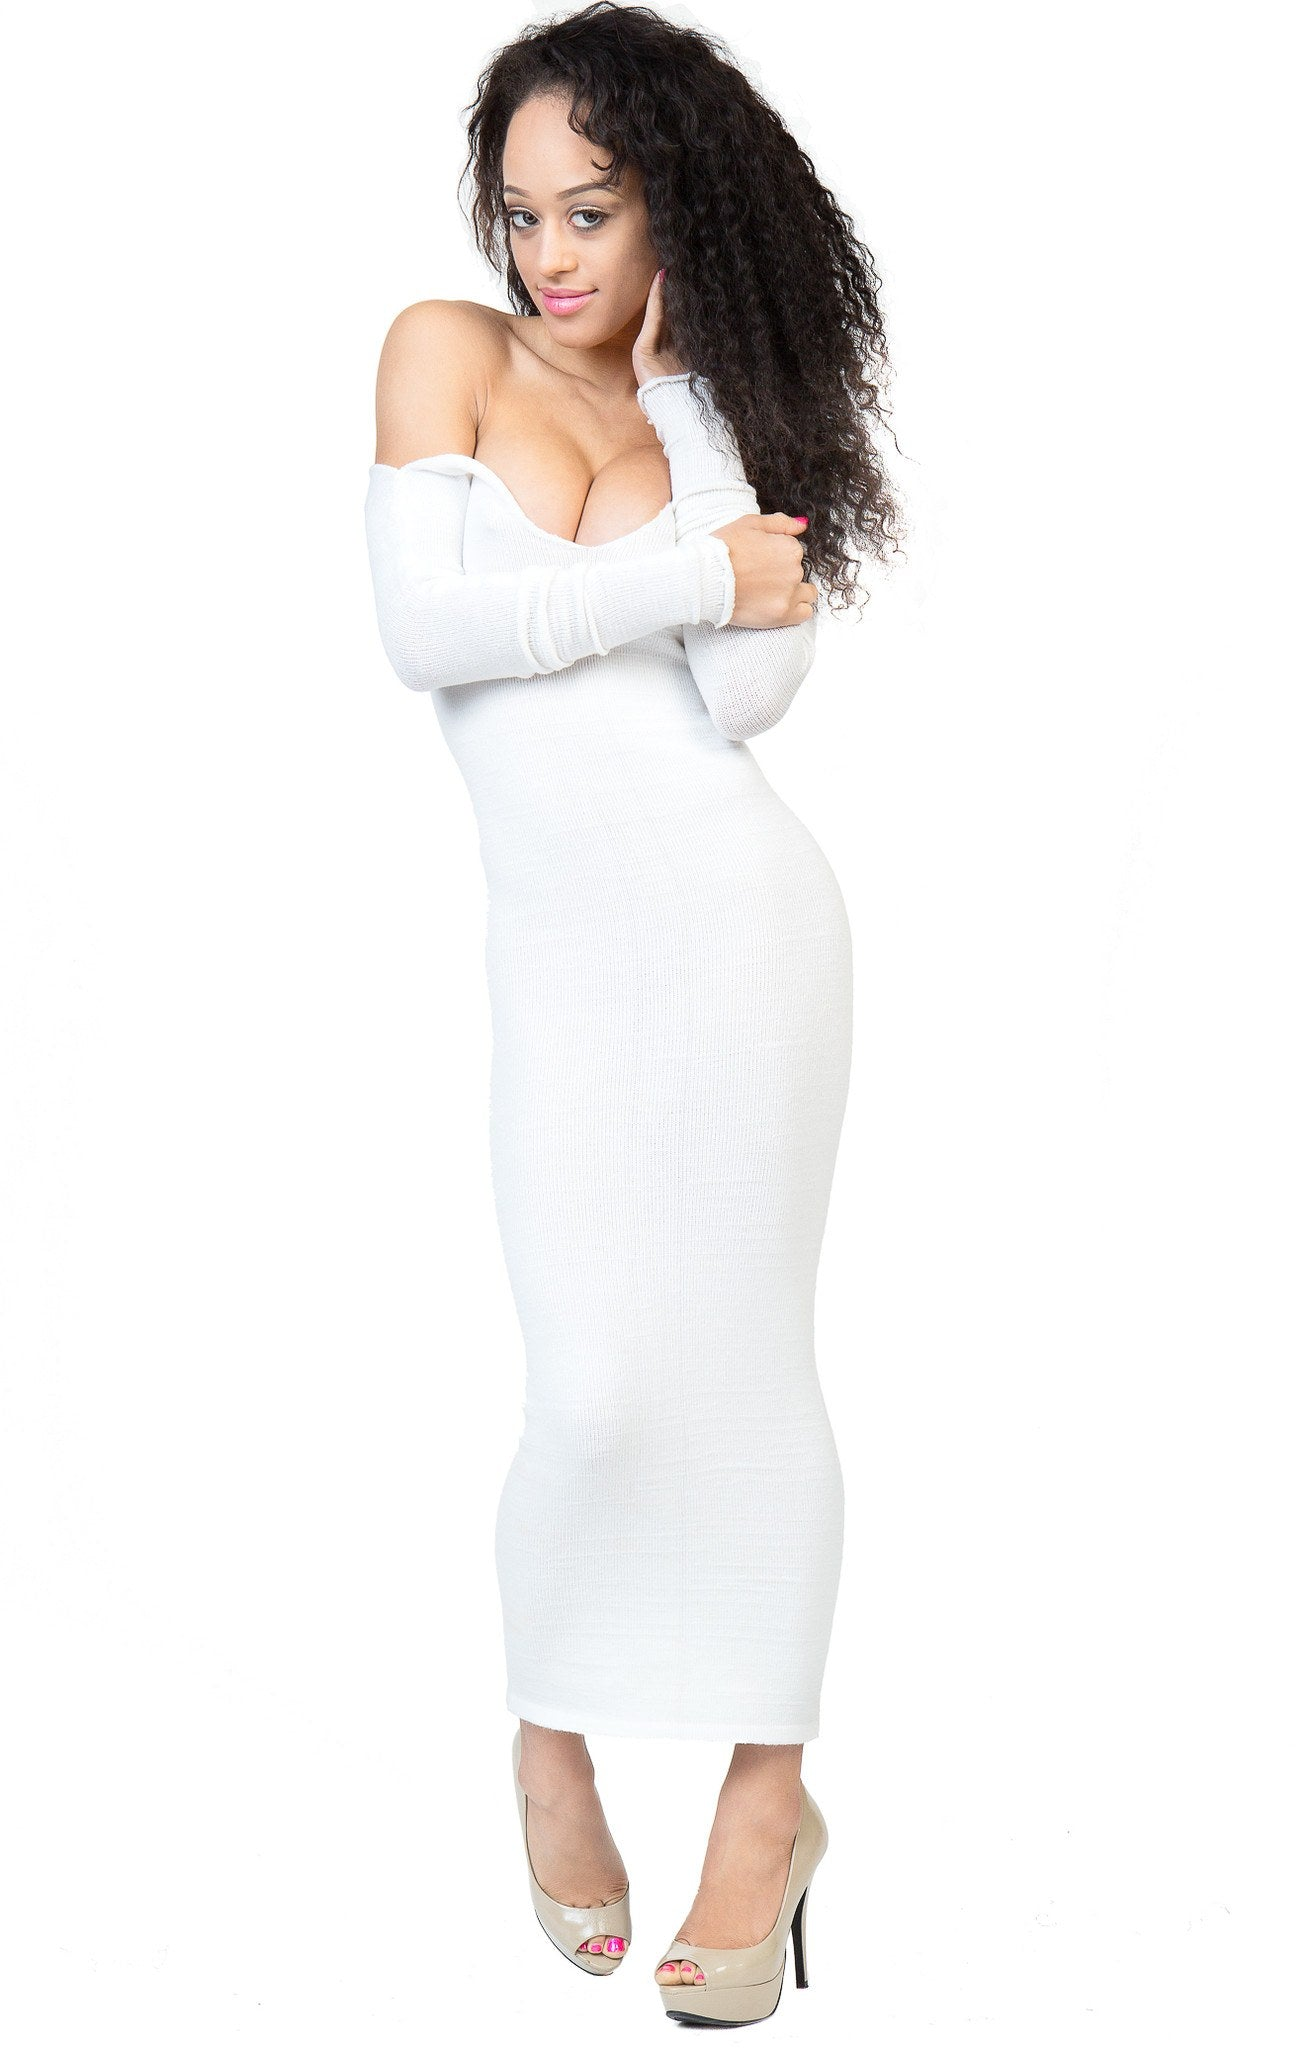 Elegant Ankle Length Cocktail Party Dress Stretch Knit KD dance Sexy, Warm Cozy Maxi Dress Made USA @KDdanceNewYork #MadeInUSA - 5